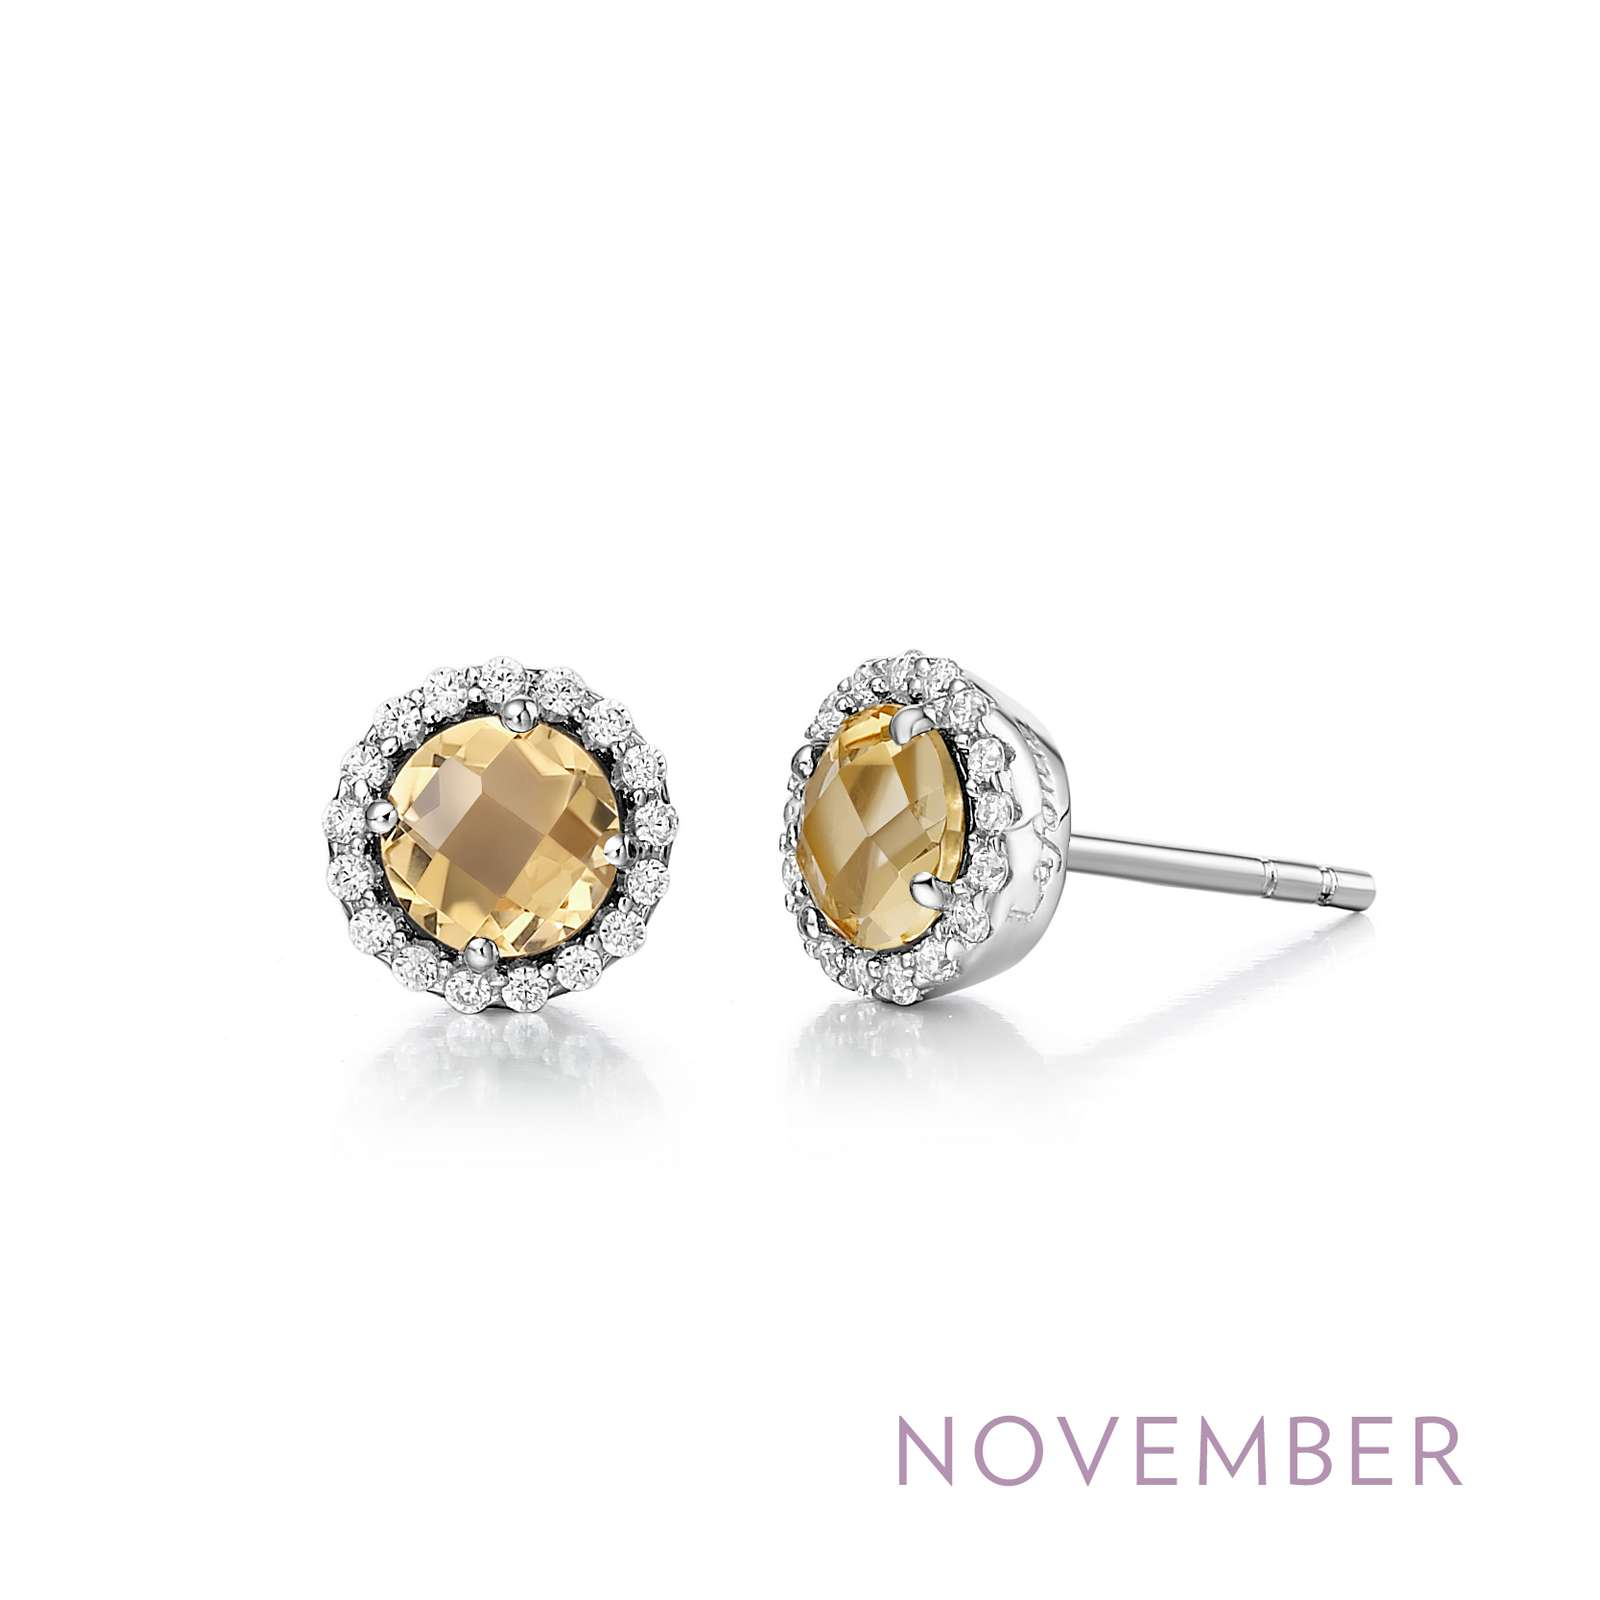 November - Citrine.  Adorn yourself with Lafonn's birthstone jewelry. These halo stud earrings are set with genuine citrines surrounded by Lafonn's signature Lassaire simulated diamonds in sterling silver bonded with platinum.